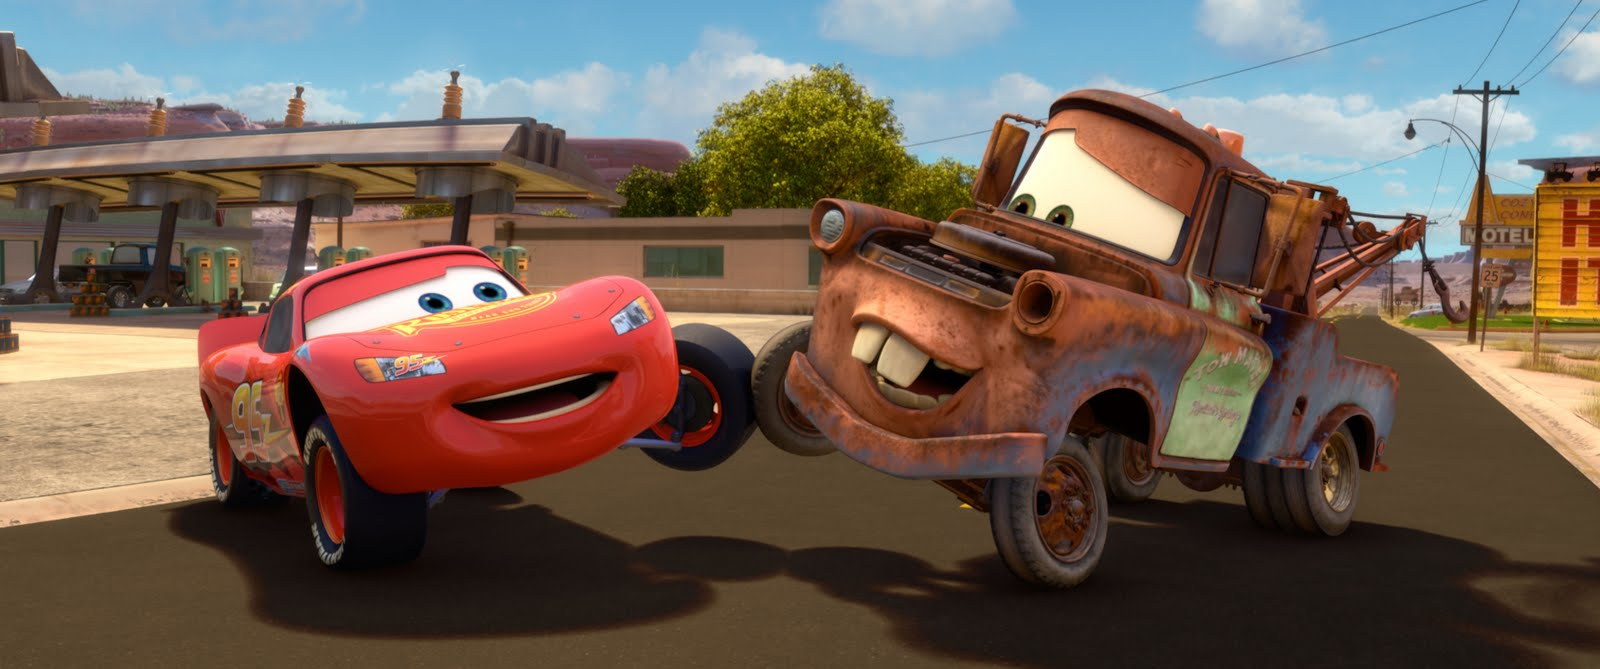 Cars 2 Lightning McQueen and Mater